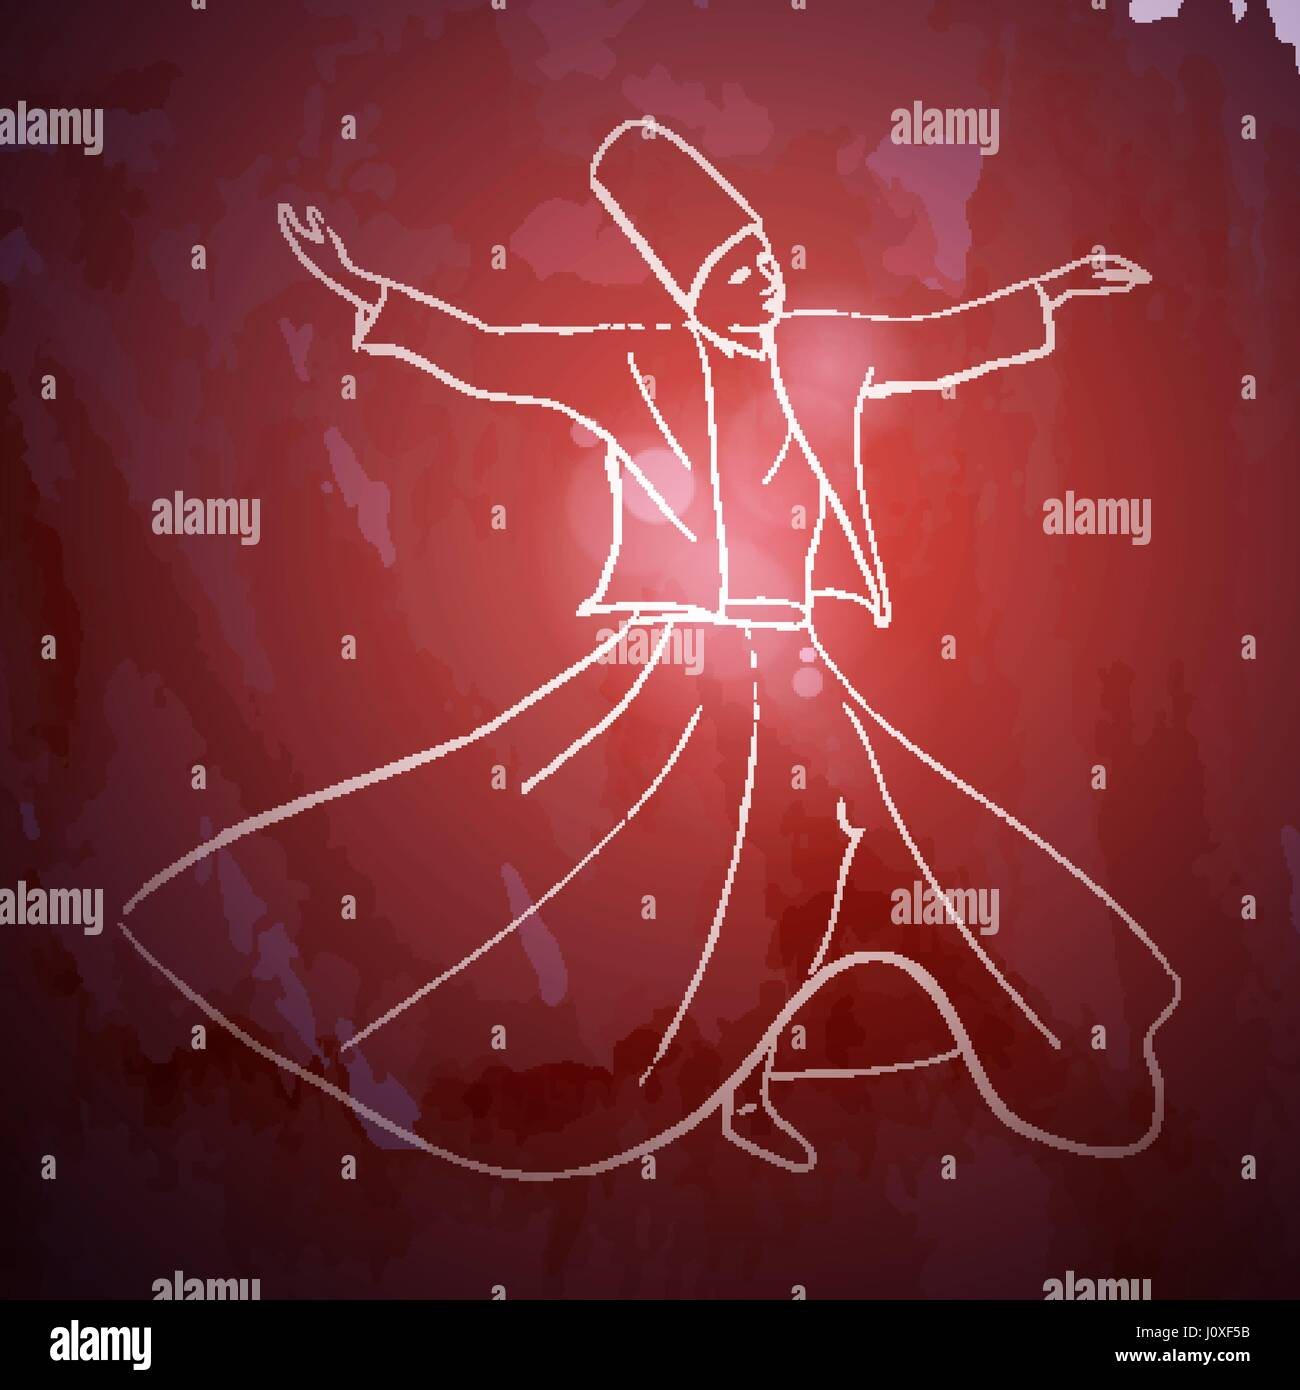 Whirling Dervish sufi religious dance - Stock Vector